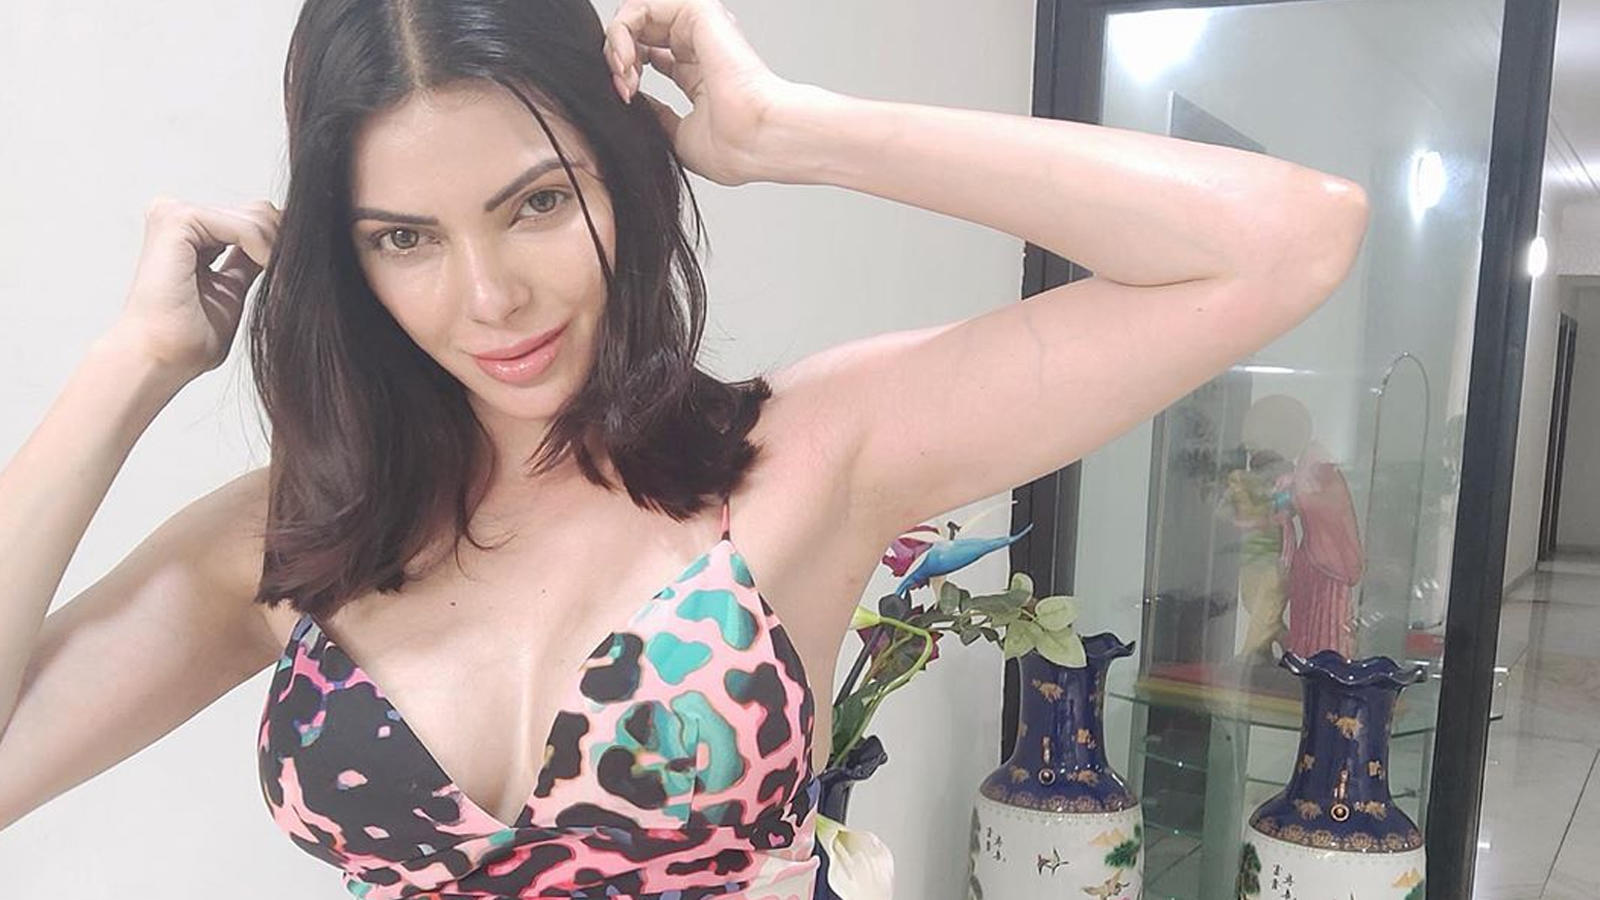 sherlyn-chopra-claims-she-she-saw-wives-of-cricketers-and-bollywood-stars-snorting-white-powder-at-an-ipl-party